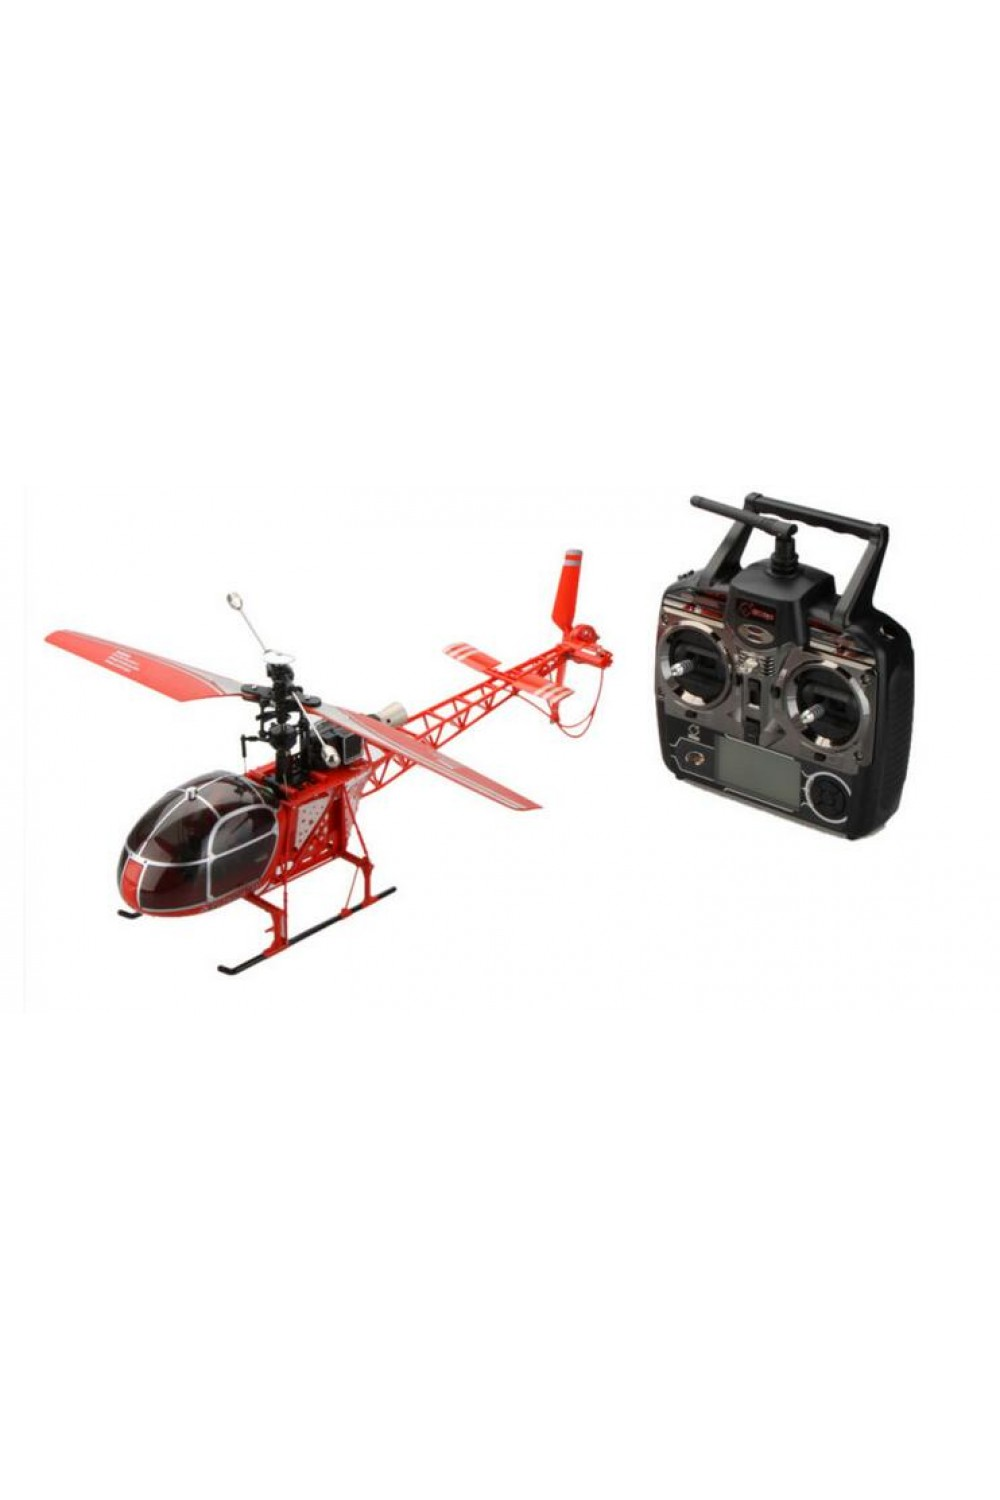 High Quality RC Helicopter drone  V915 4CH 2.4G 6 Axis Gyro 2 ModesSingle Propeller High Simulation Remote Control Helicopter